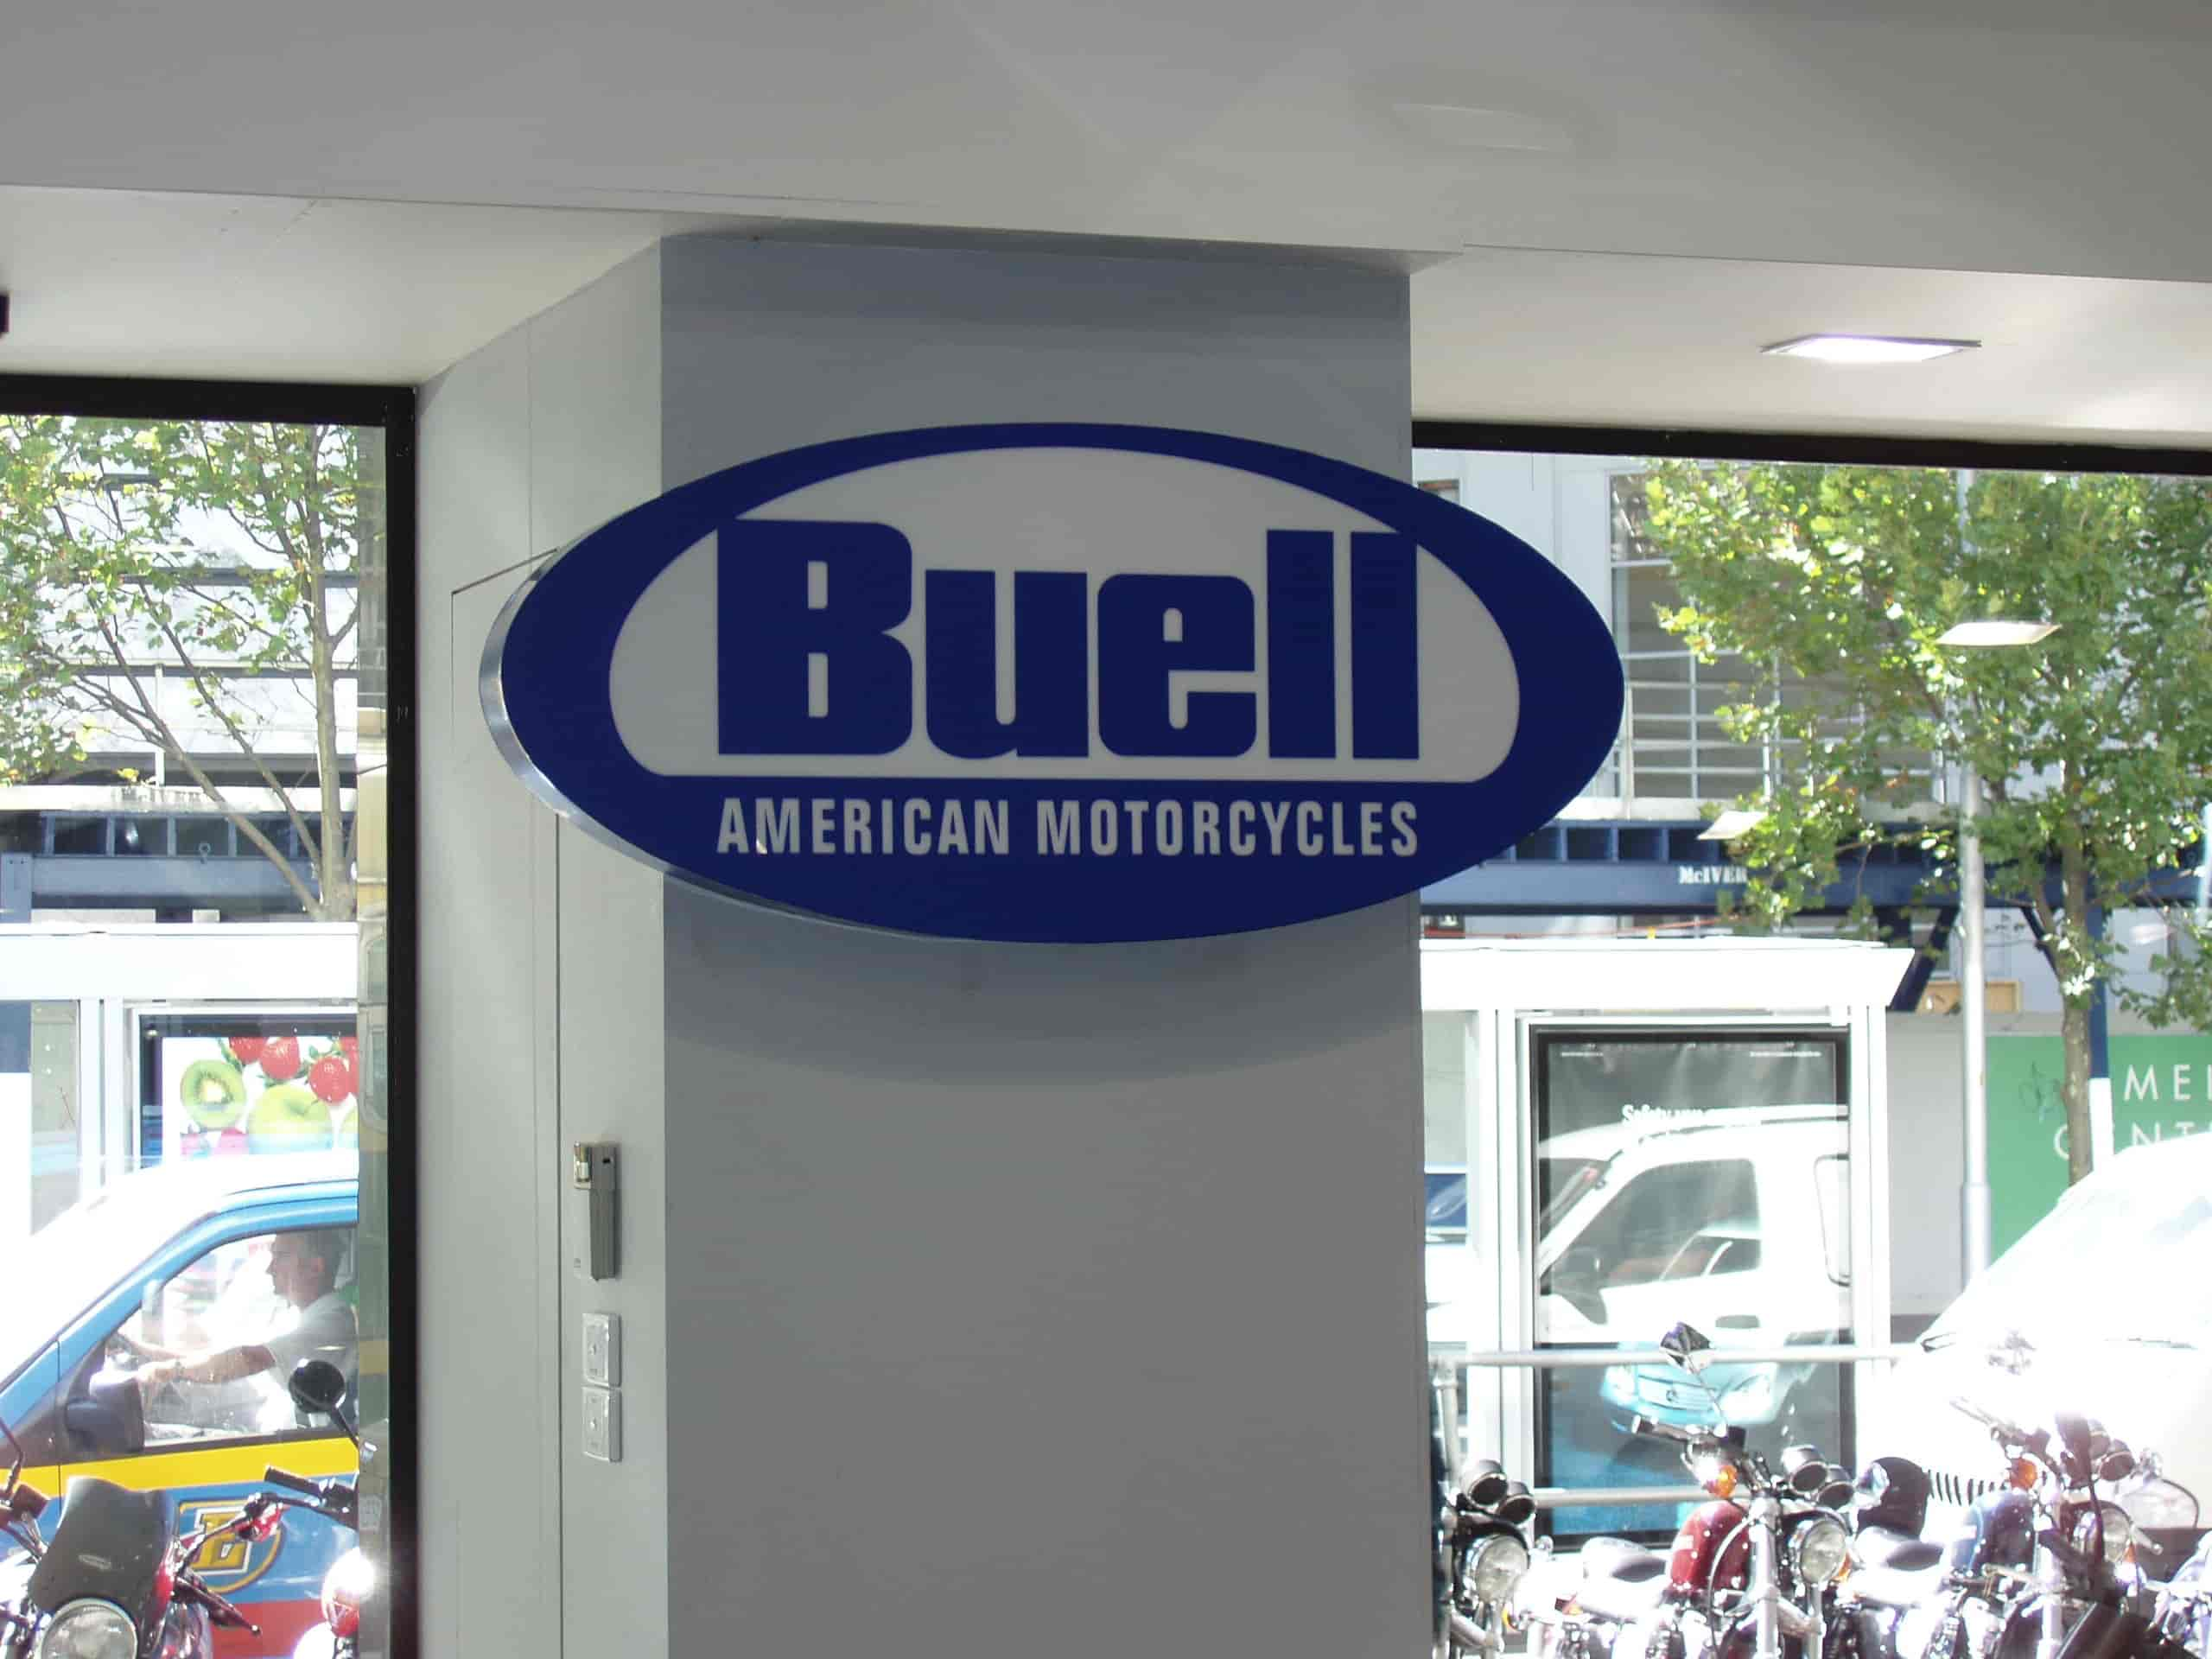 buell american motorcycles signage